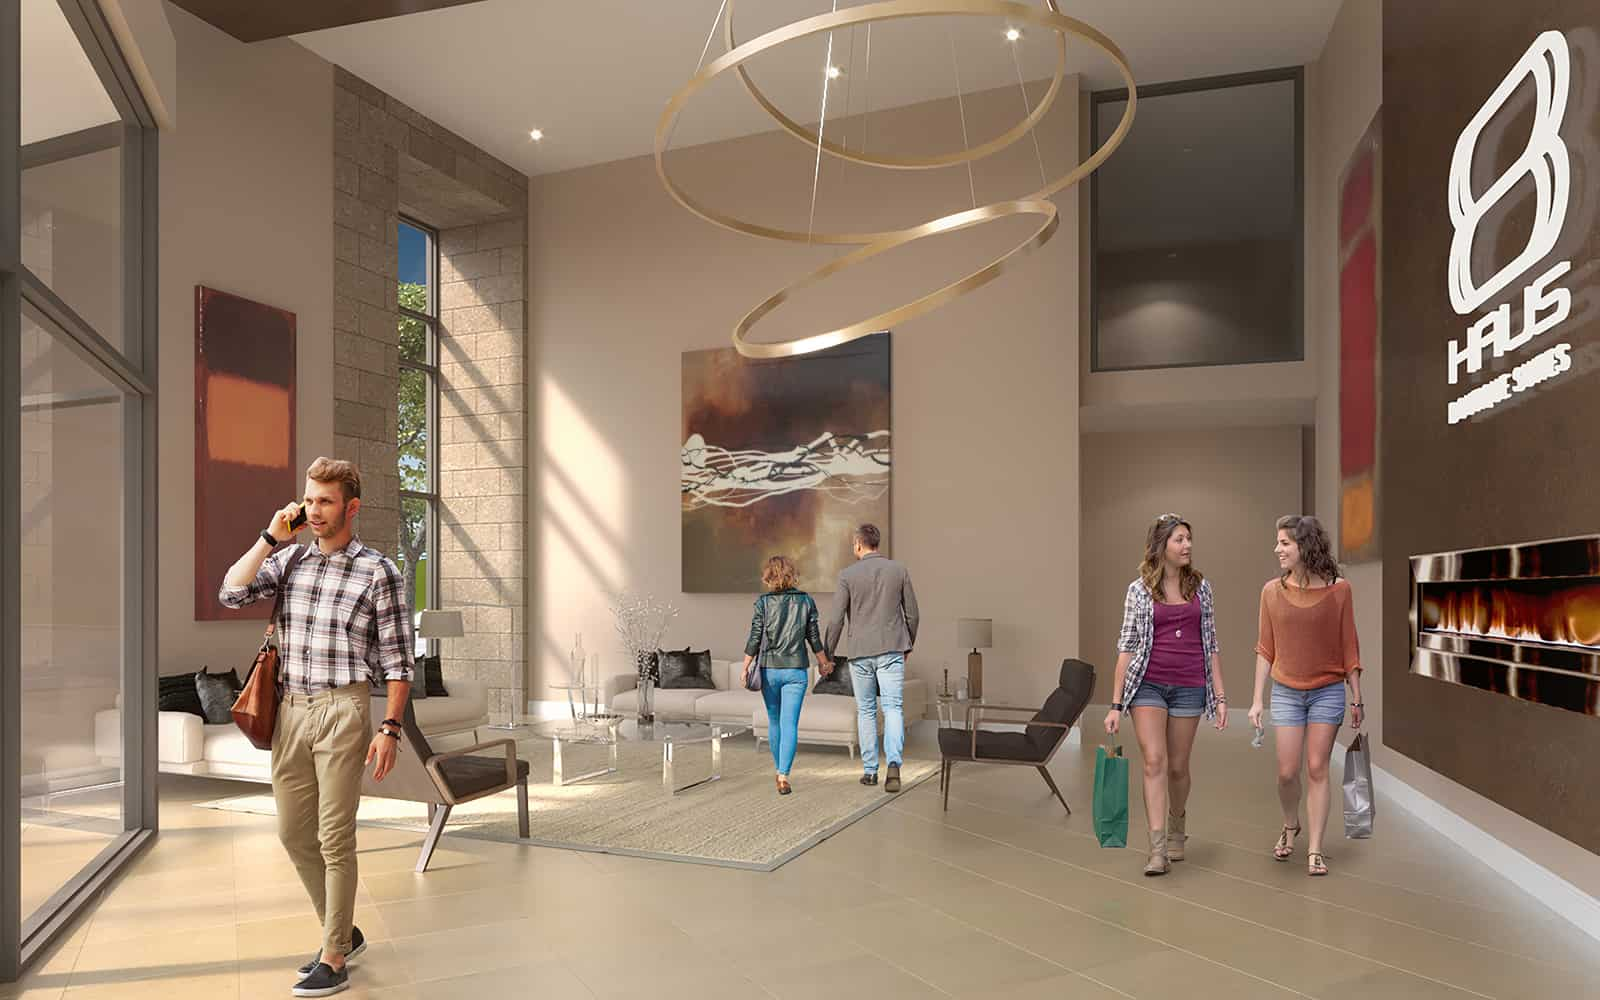 Interior rendering of 8 Haus Boutique condos lobby entrance with seating.